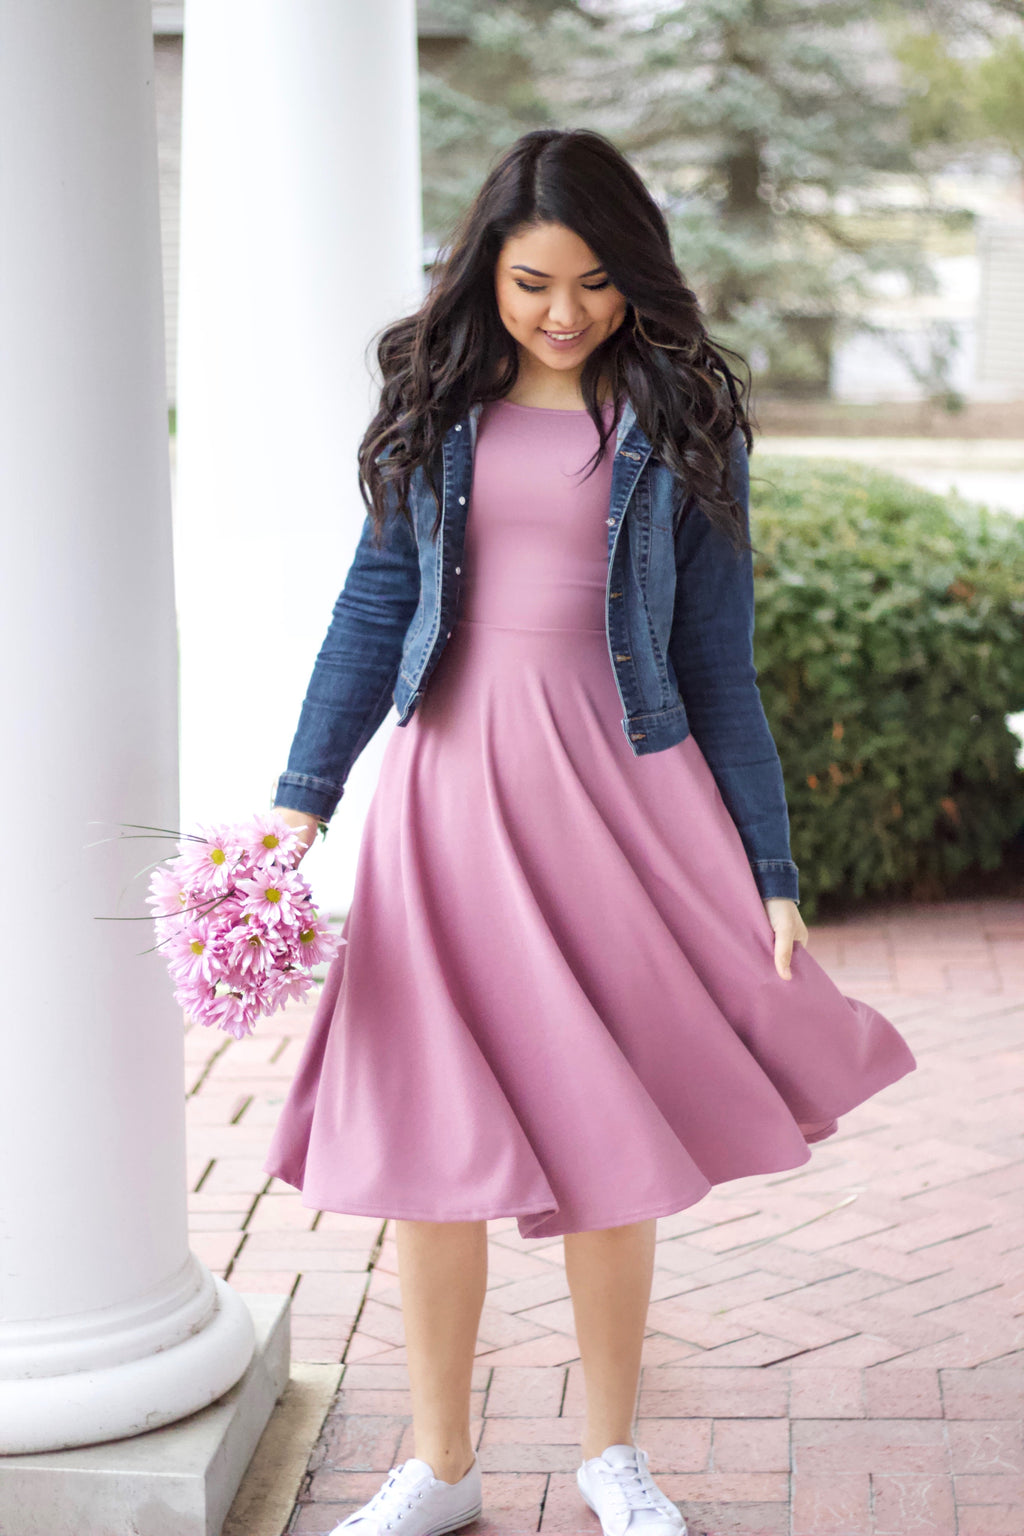 Lola Mauve Swing Dress - Short Sleeve - The Darling Style - Modest Dresses